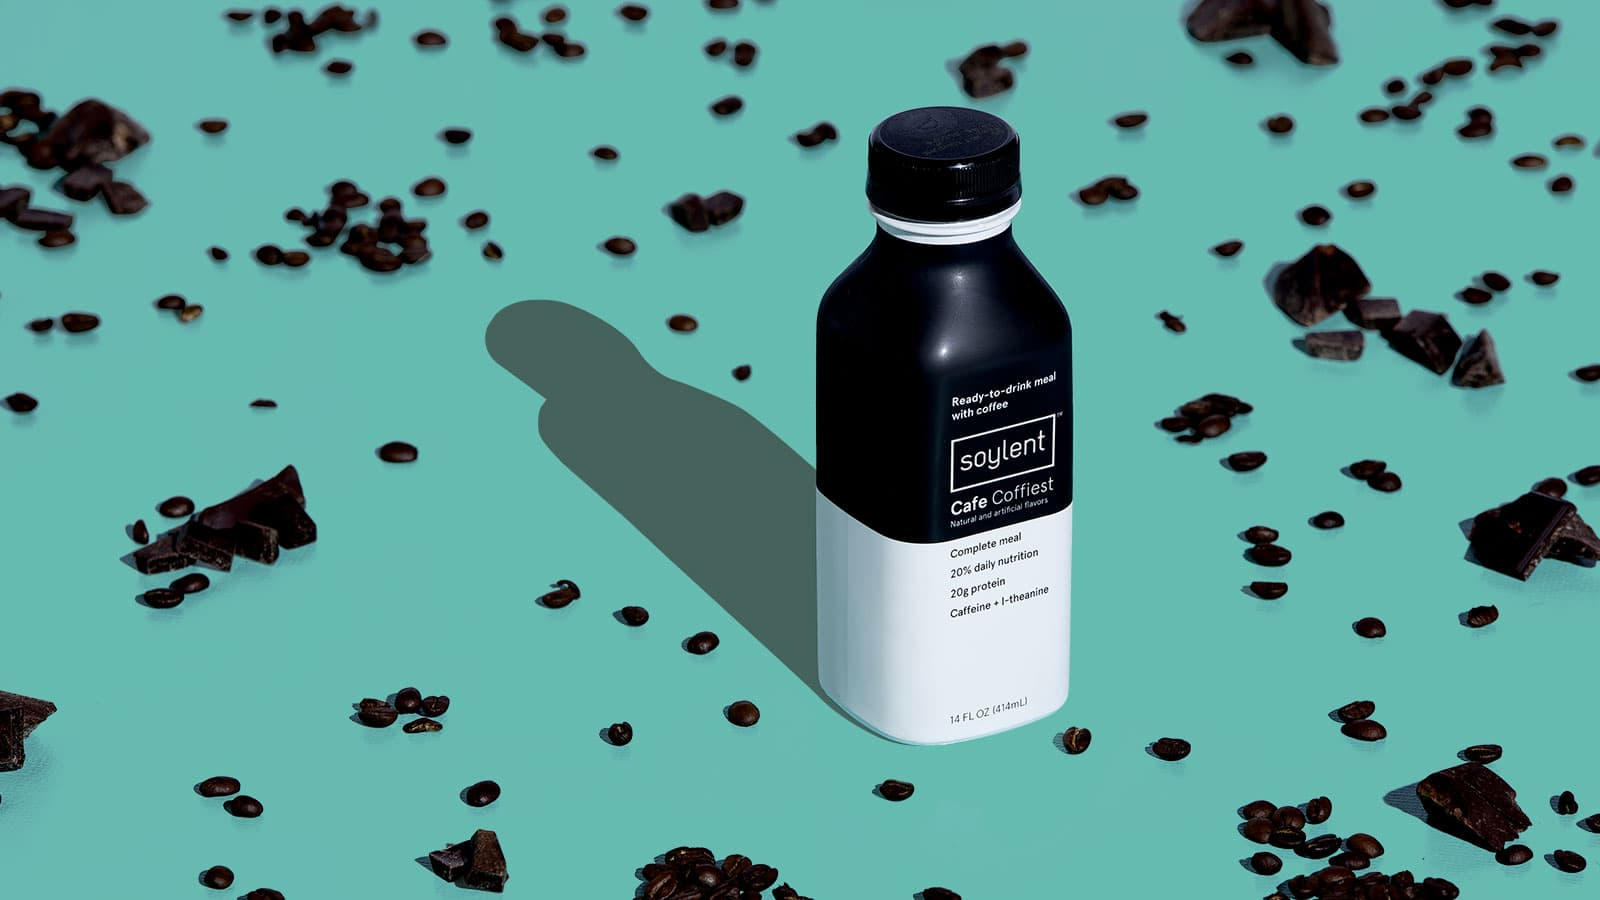 A bottle of Soylent Cafe Coffiest surrounded by coffee beans and chocolate chunks.